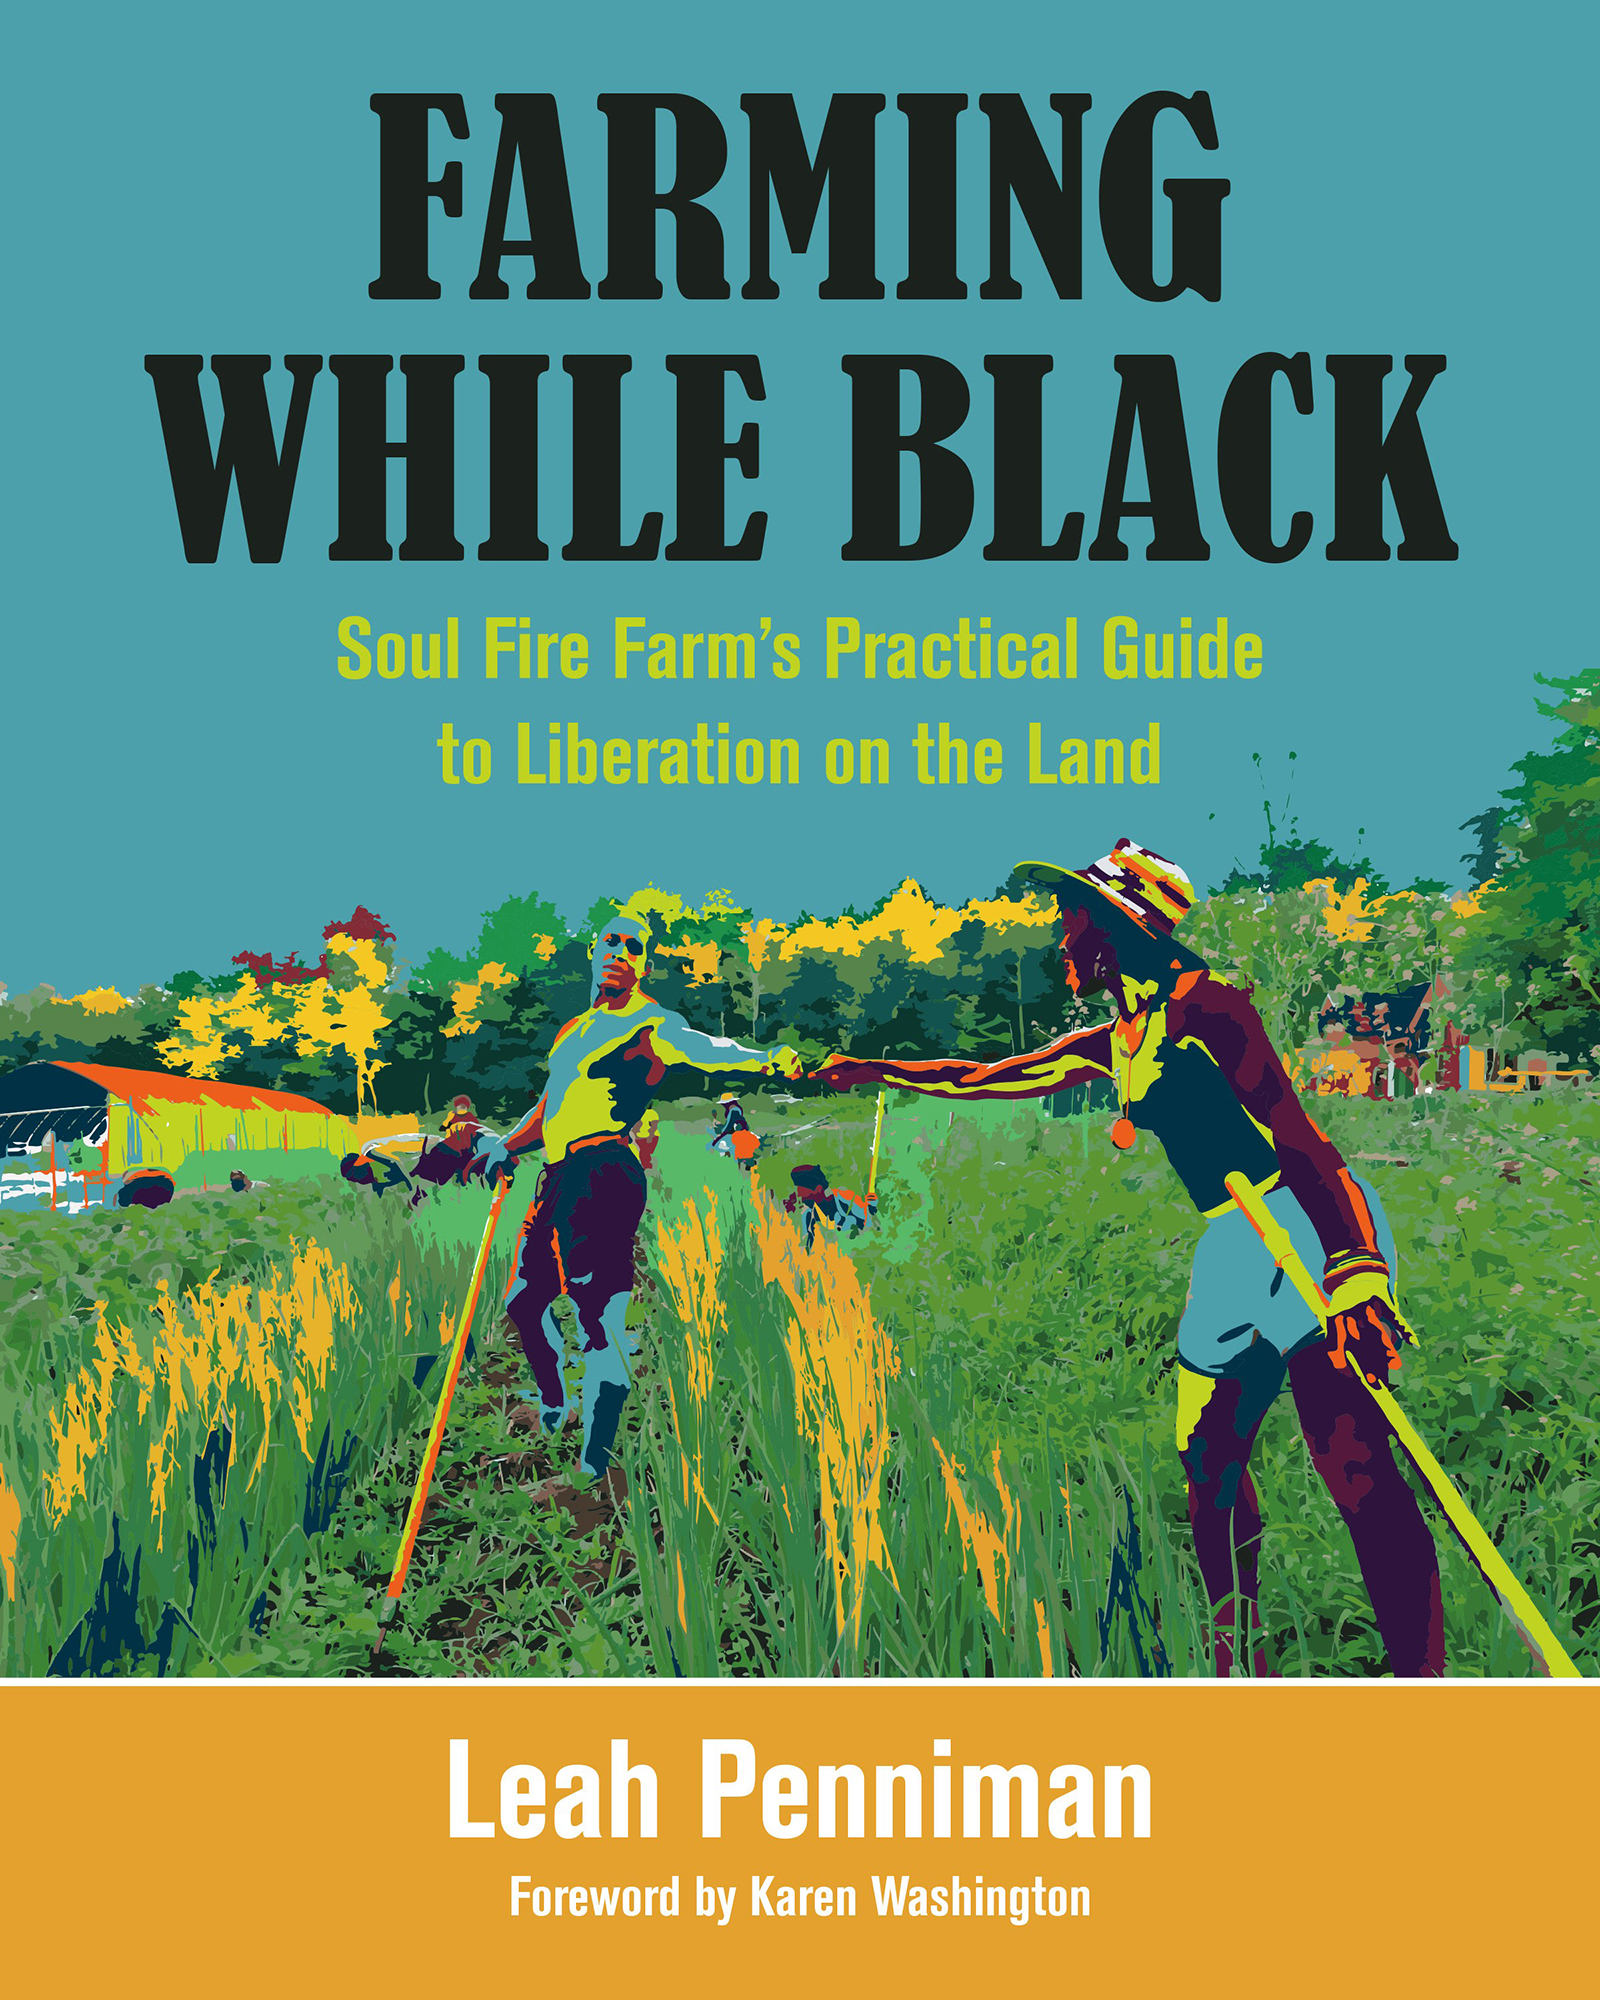 Book Cover of Farming While Black: Soul Fire Farm's Practical Guide to Liberation on the Land.